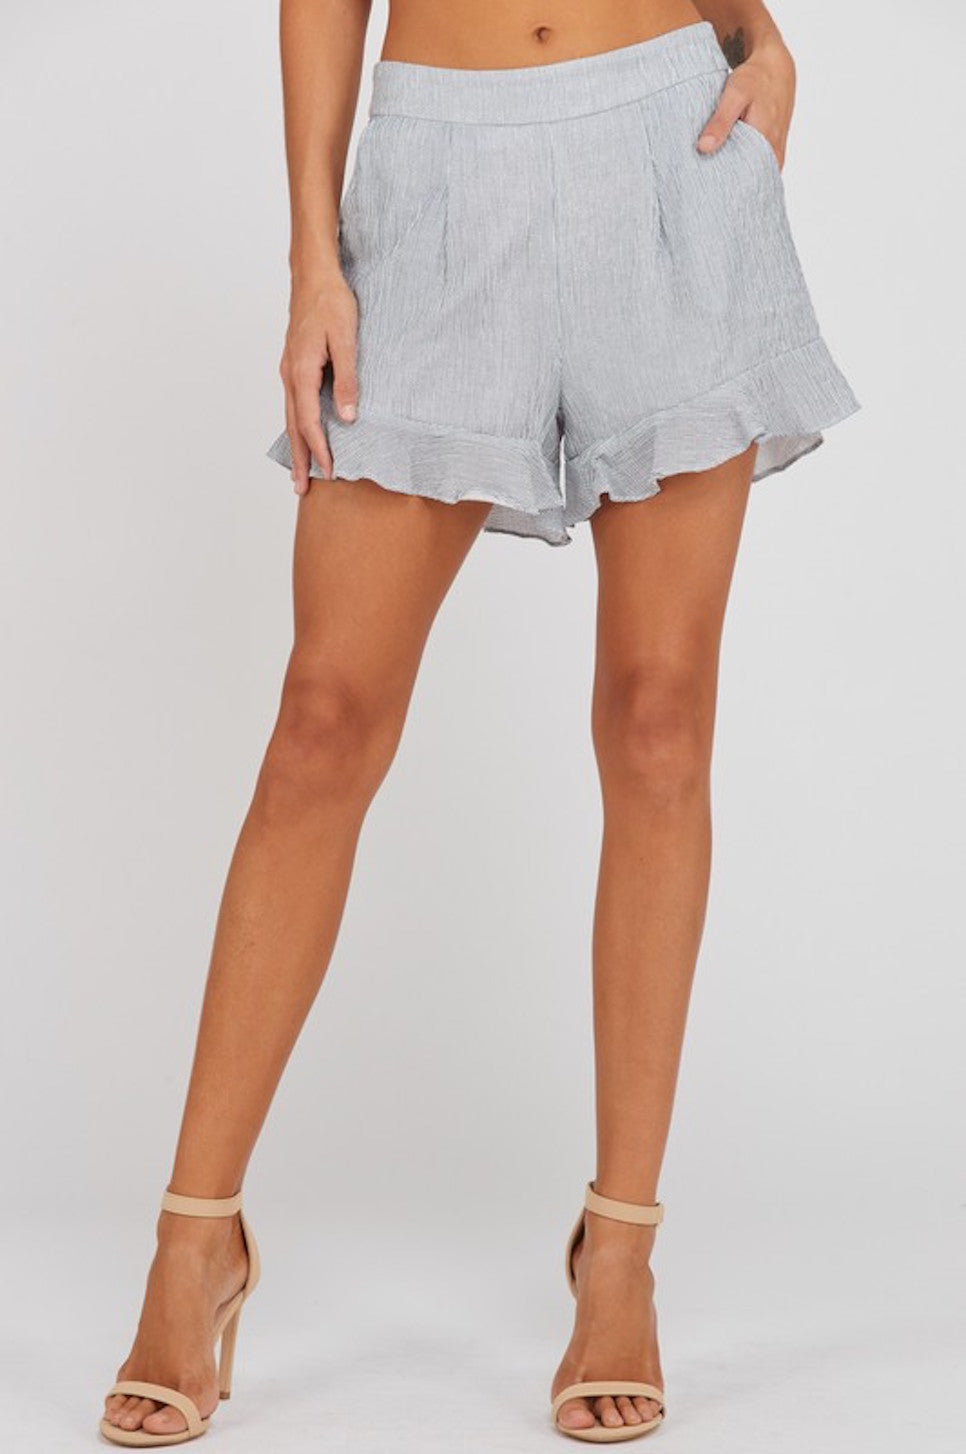 THE KAHLUA MUDSLIDE SHORTS - NAVY